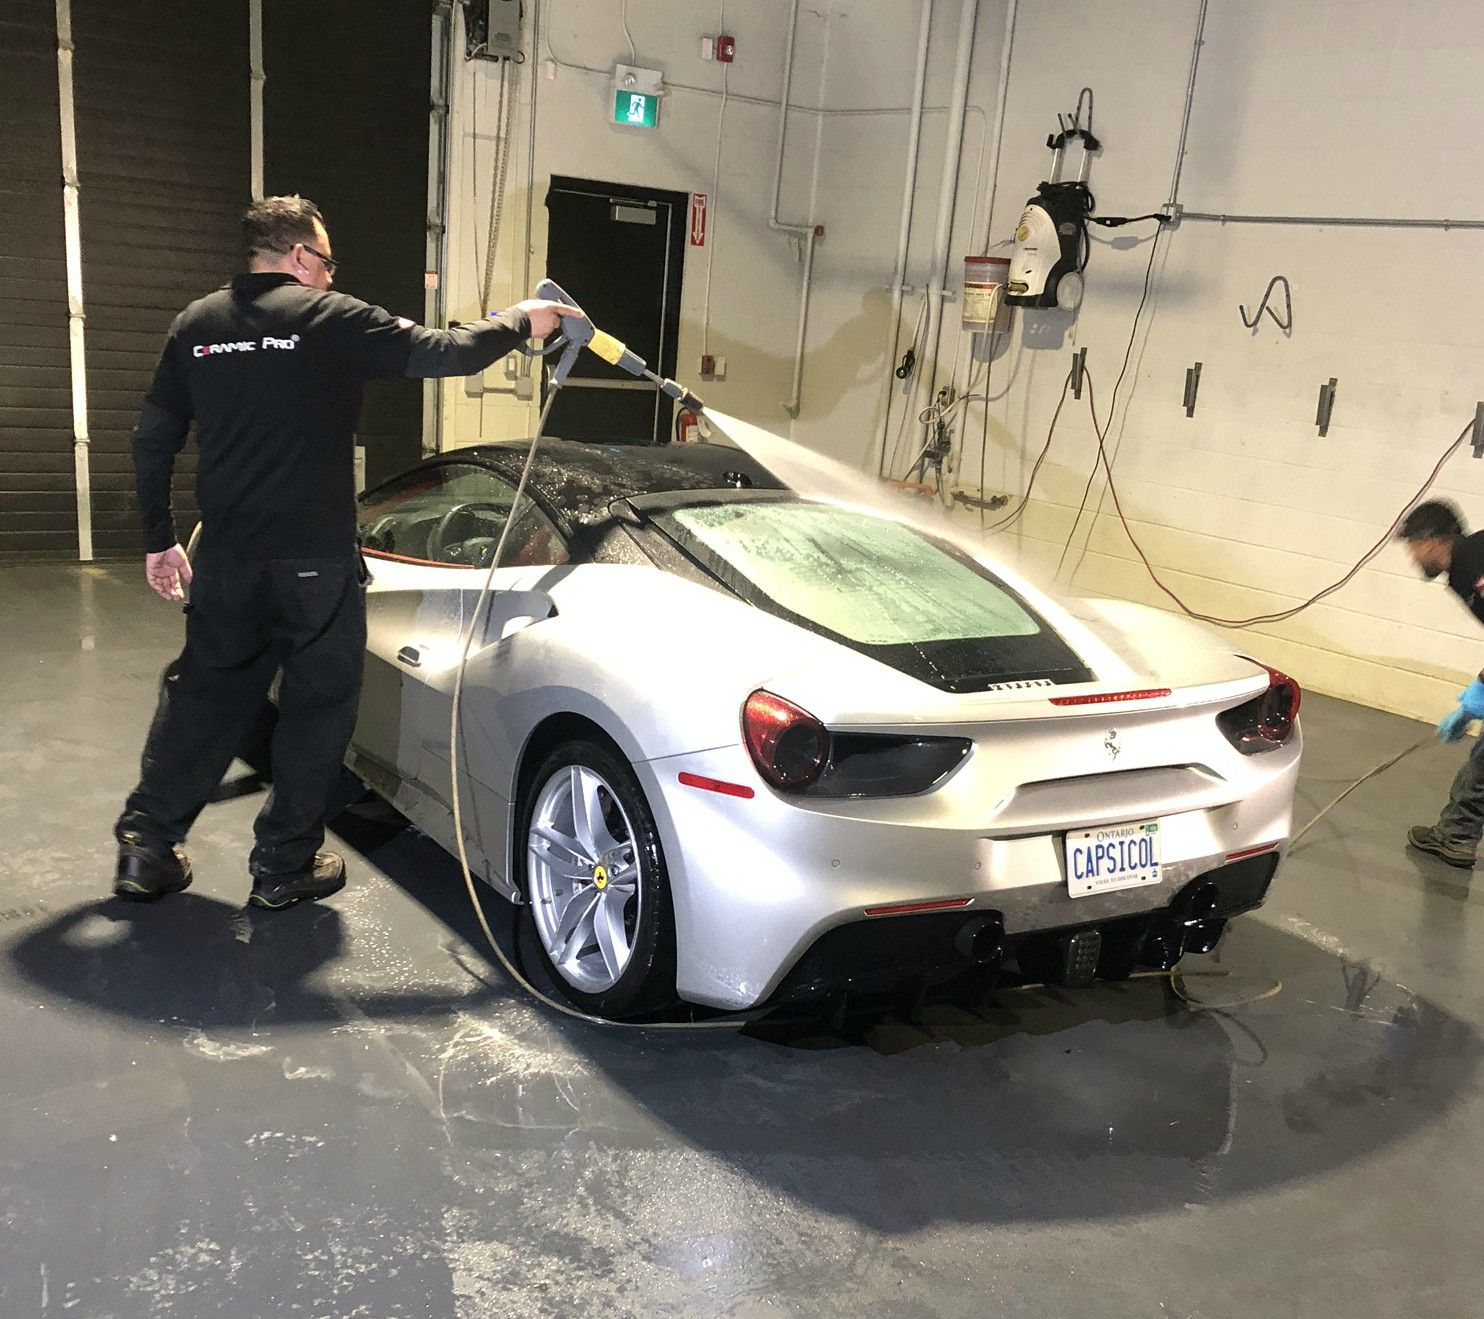 Guess What Our Gold Package Will Treat You Just Right With This Deal You Will Get Your Vehicle Hand Washed And A Lot More Ferrari World Car Wash Car Care